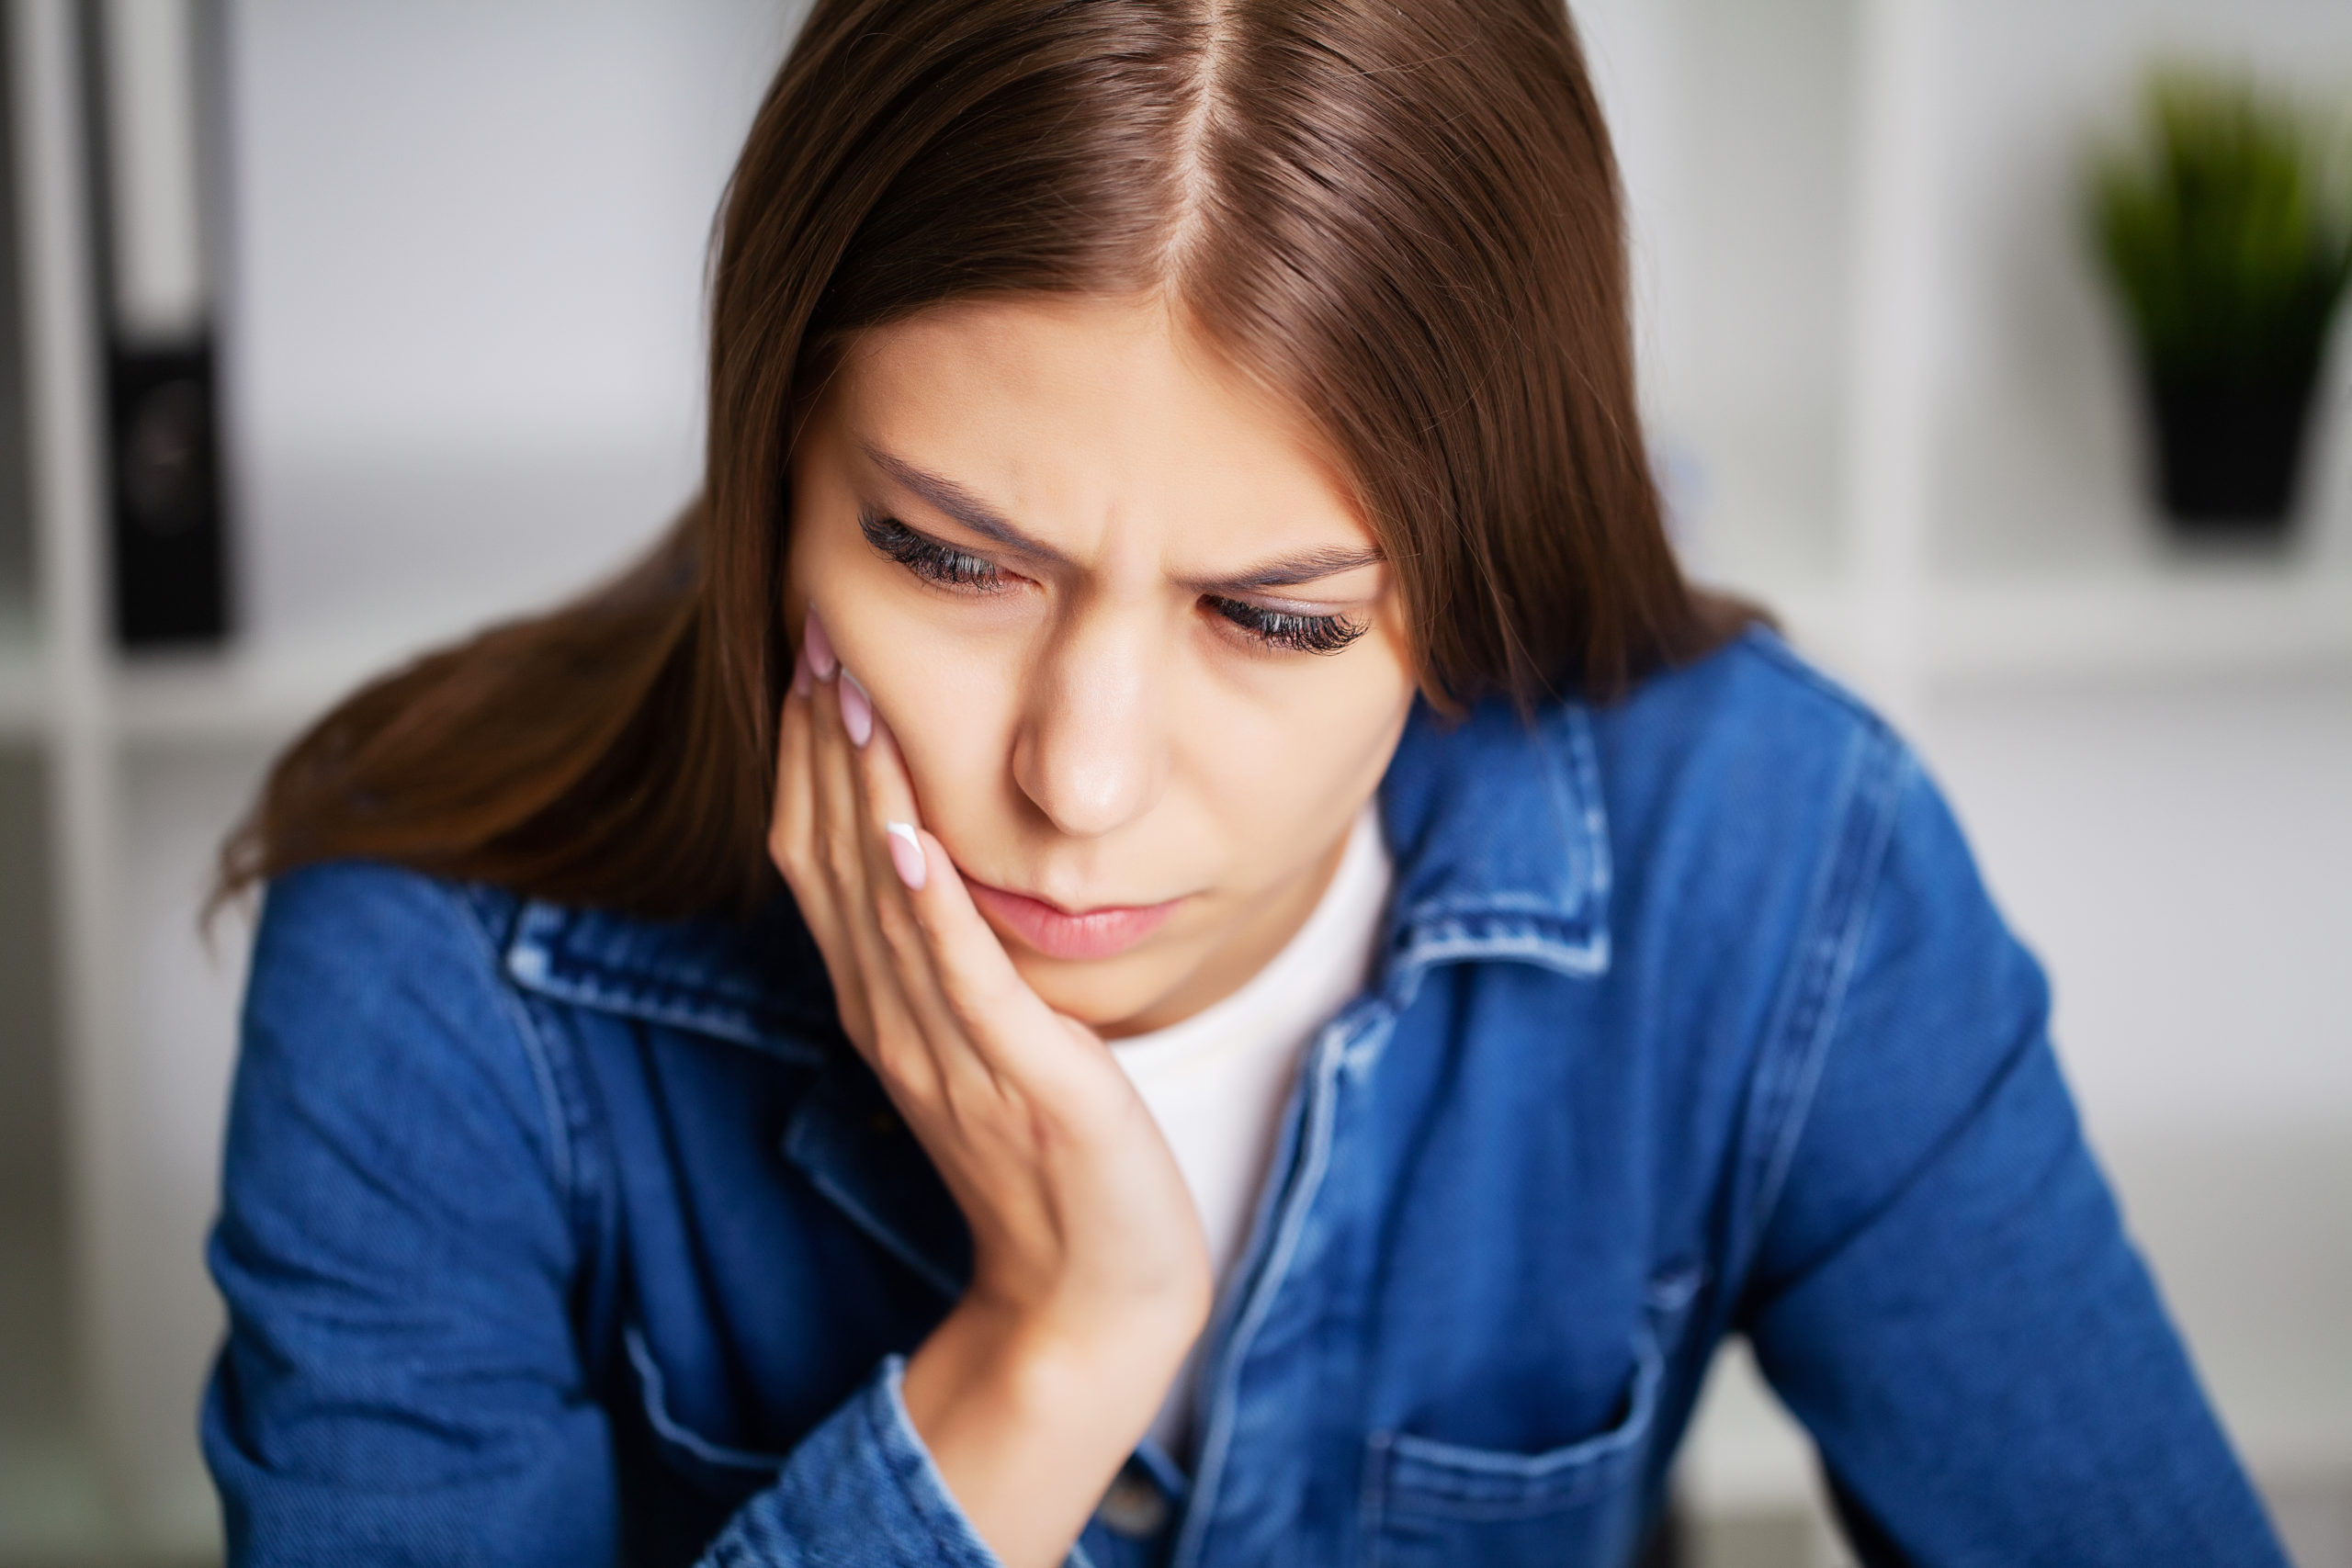 What is the reason for root canal treatment? Kensington Court Clinic